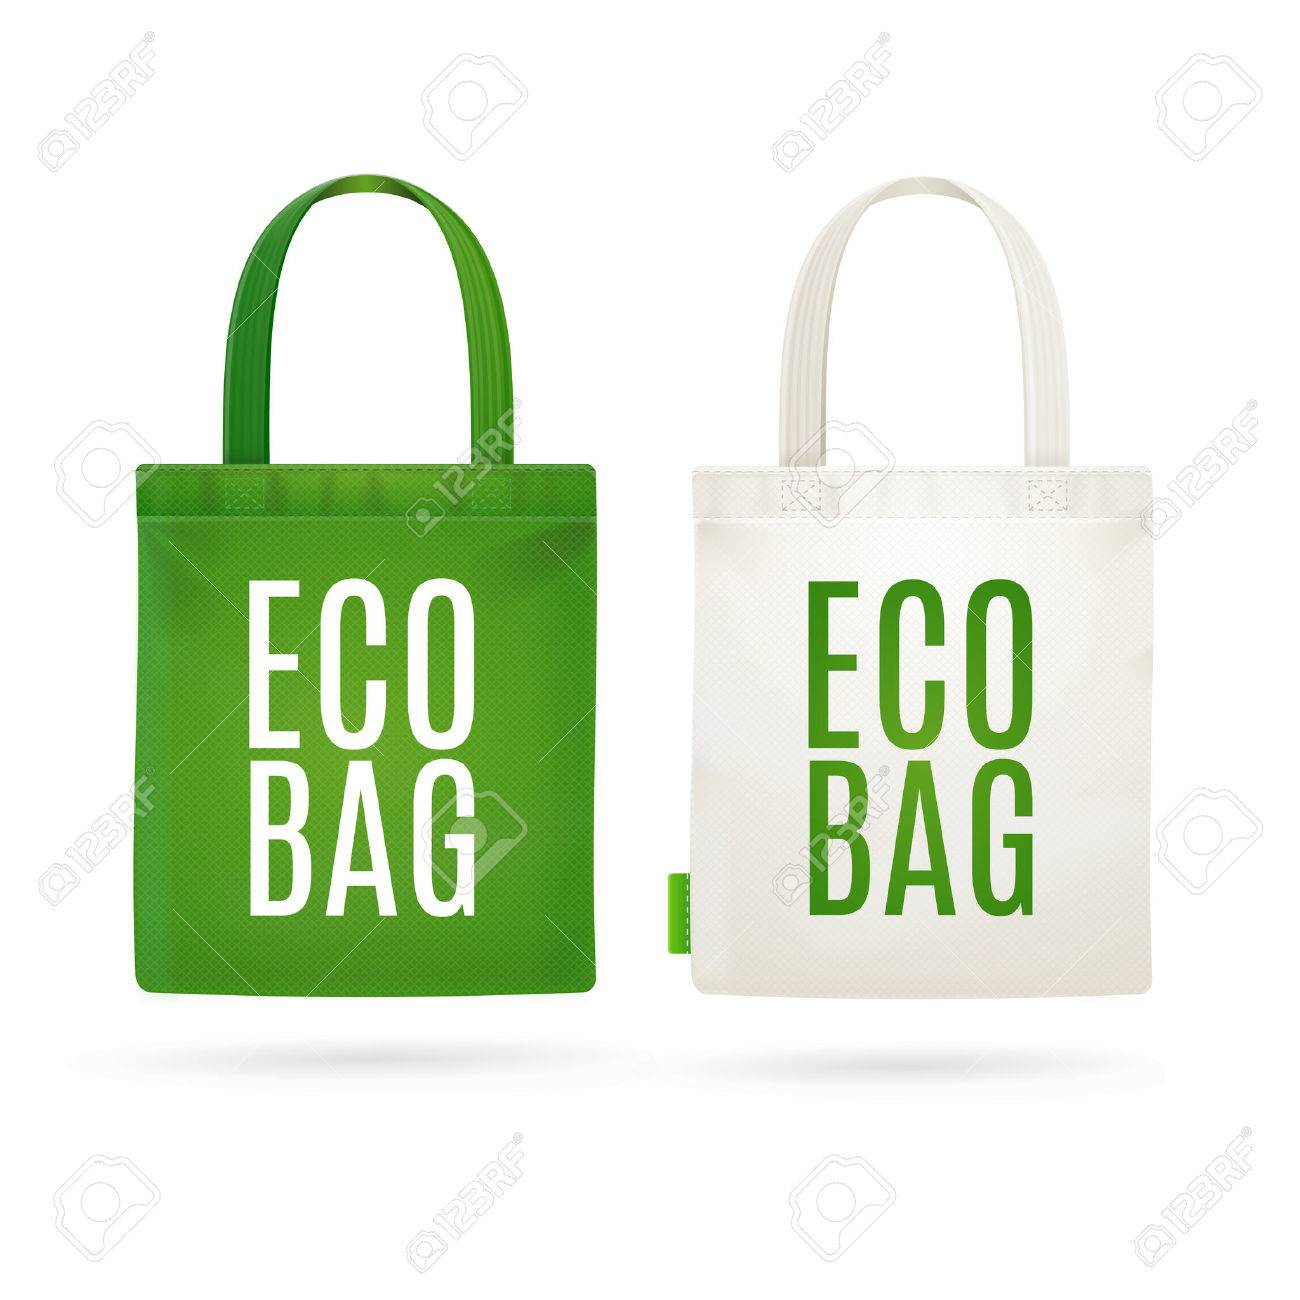 Eco Fabric Cloth Bag Tote Isolated on White Background. Care about the Environment. Vector illustration - 58745497